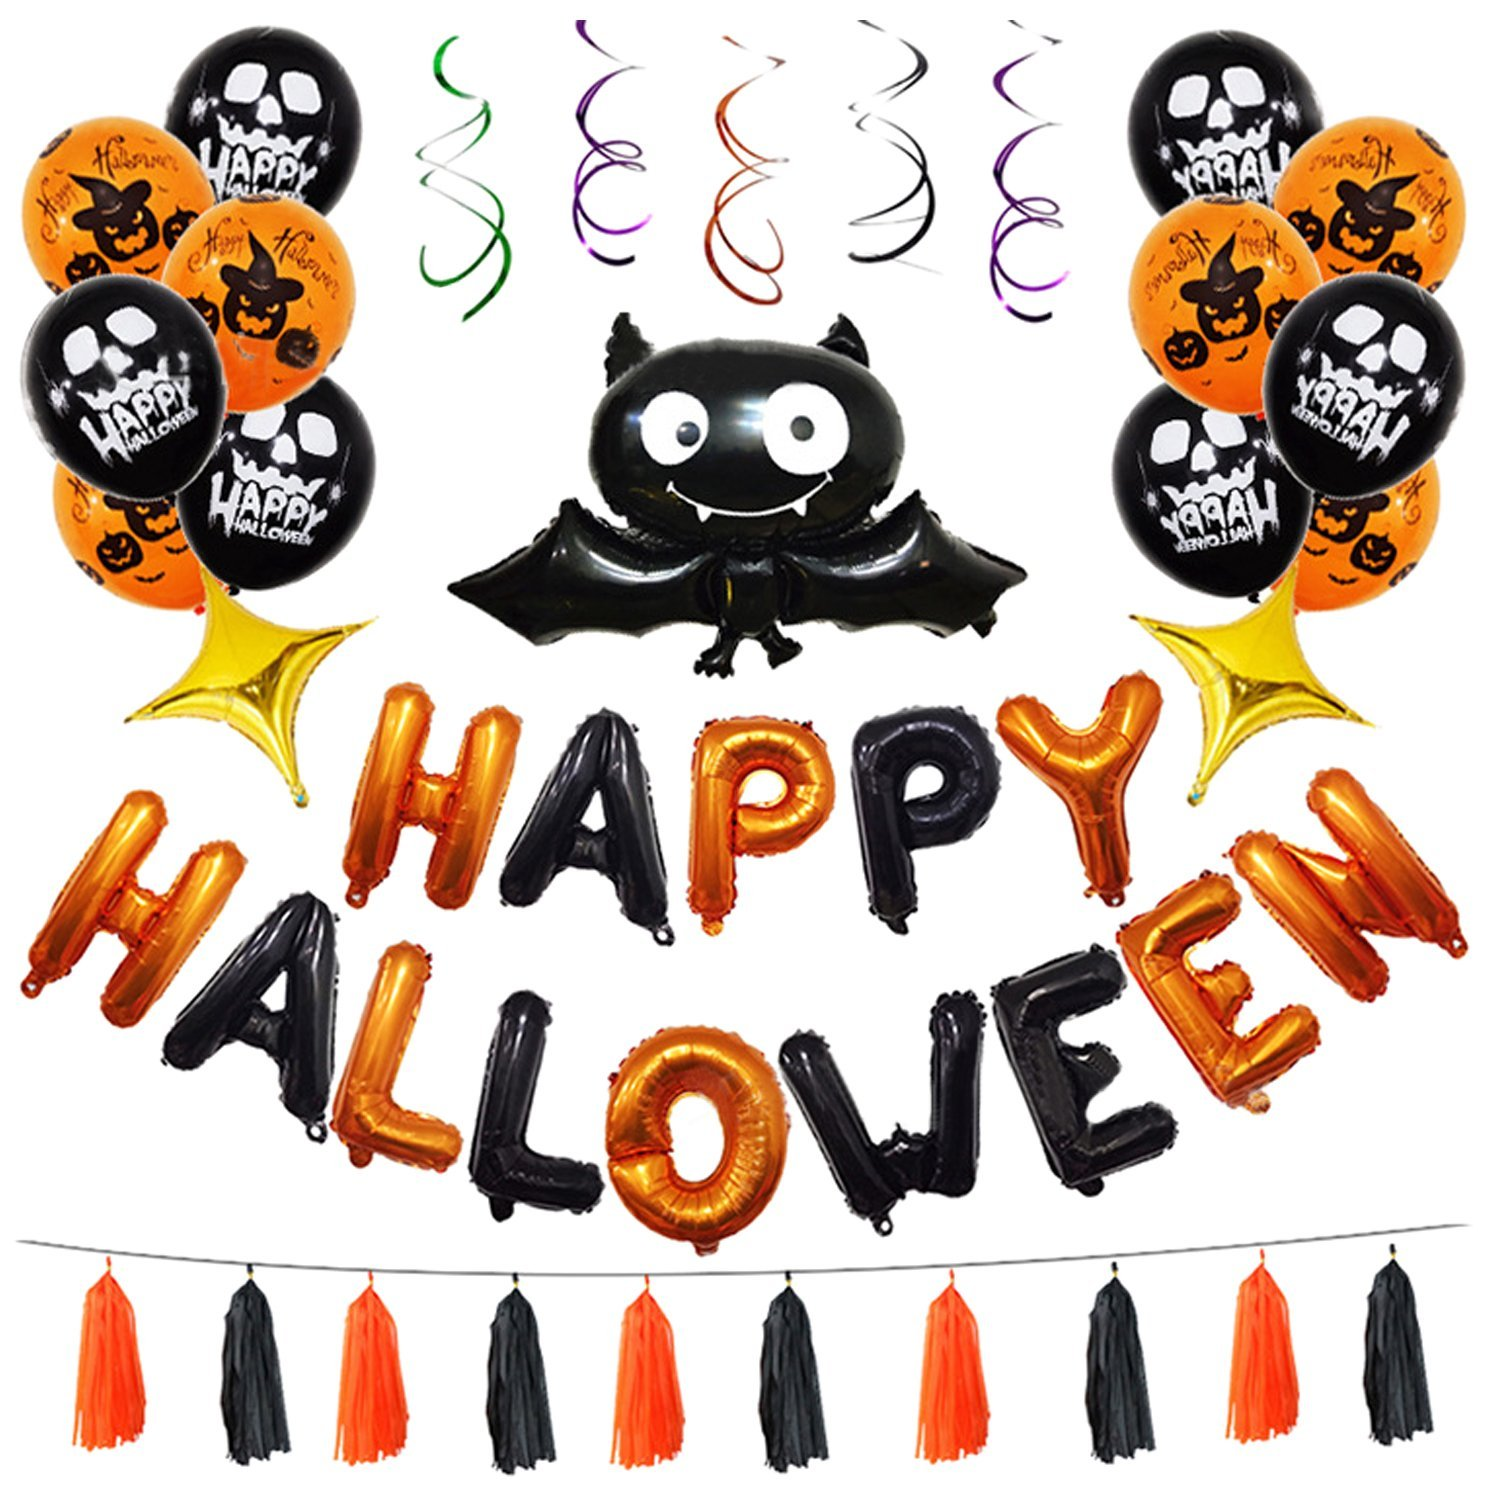 Halloween Party Supplies Birthday Decoration Balloons Scary Photo Props